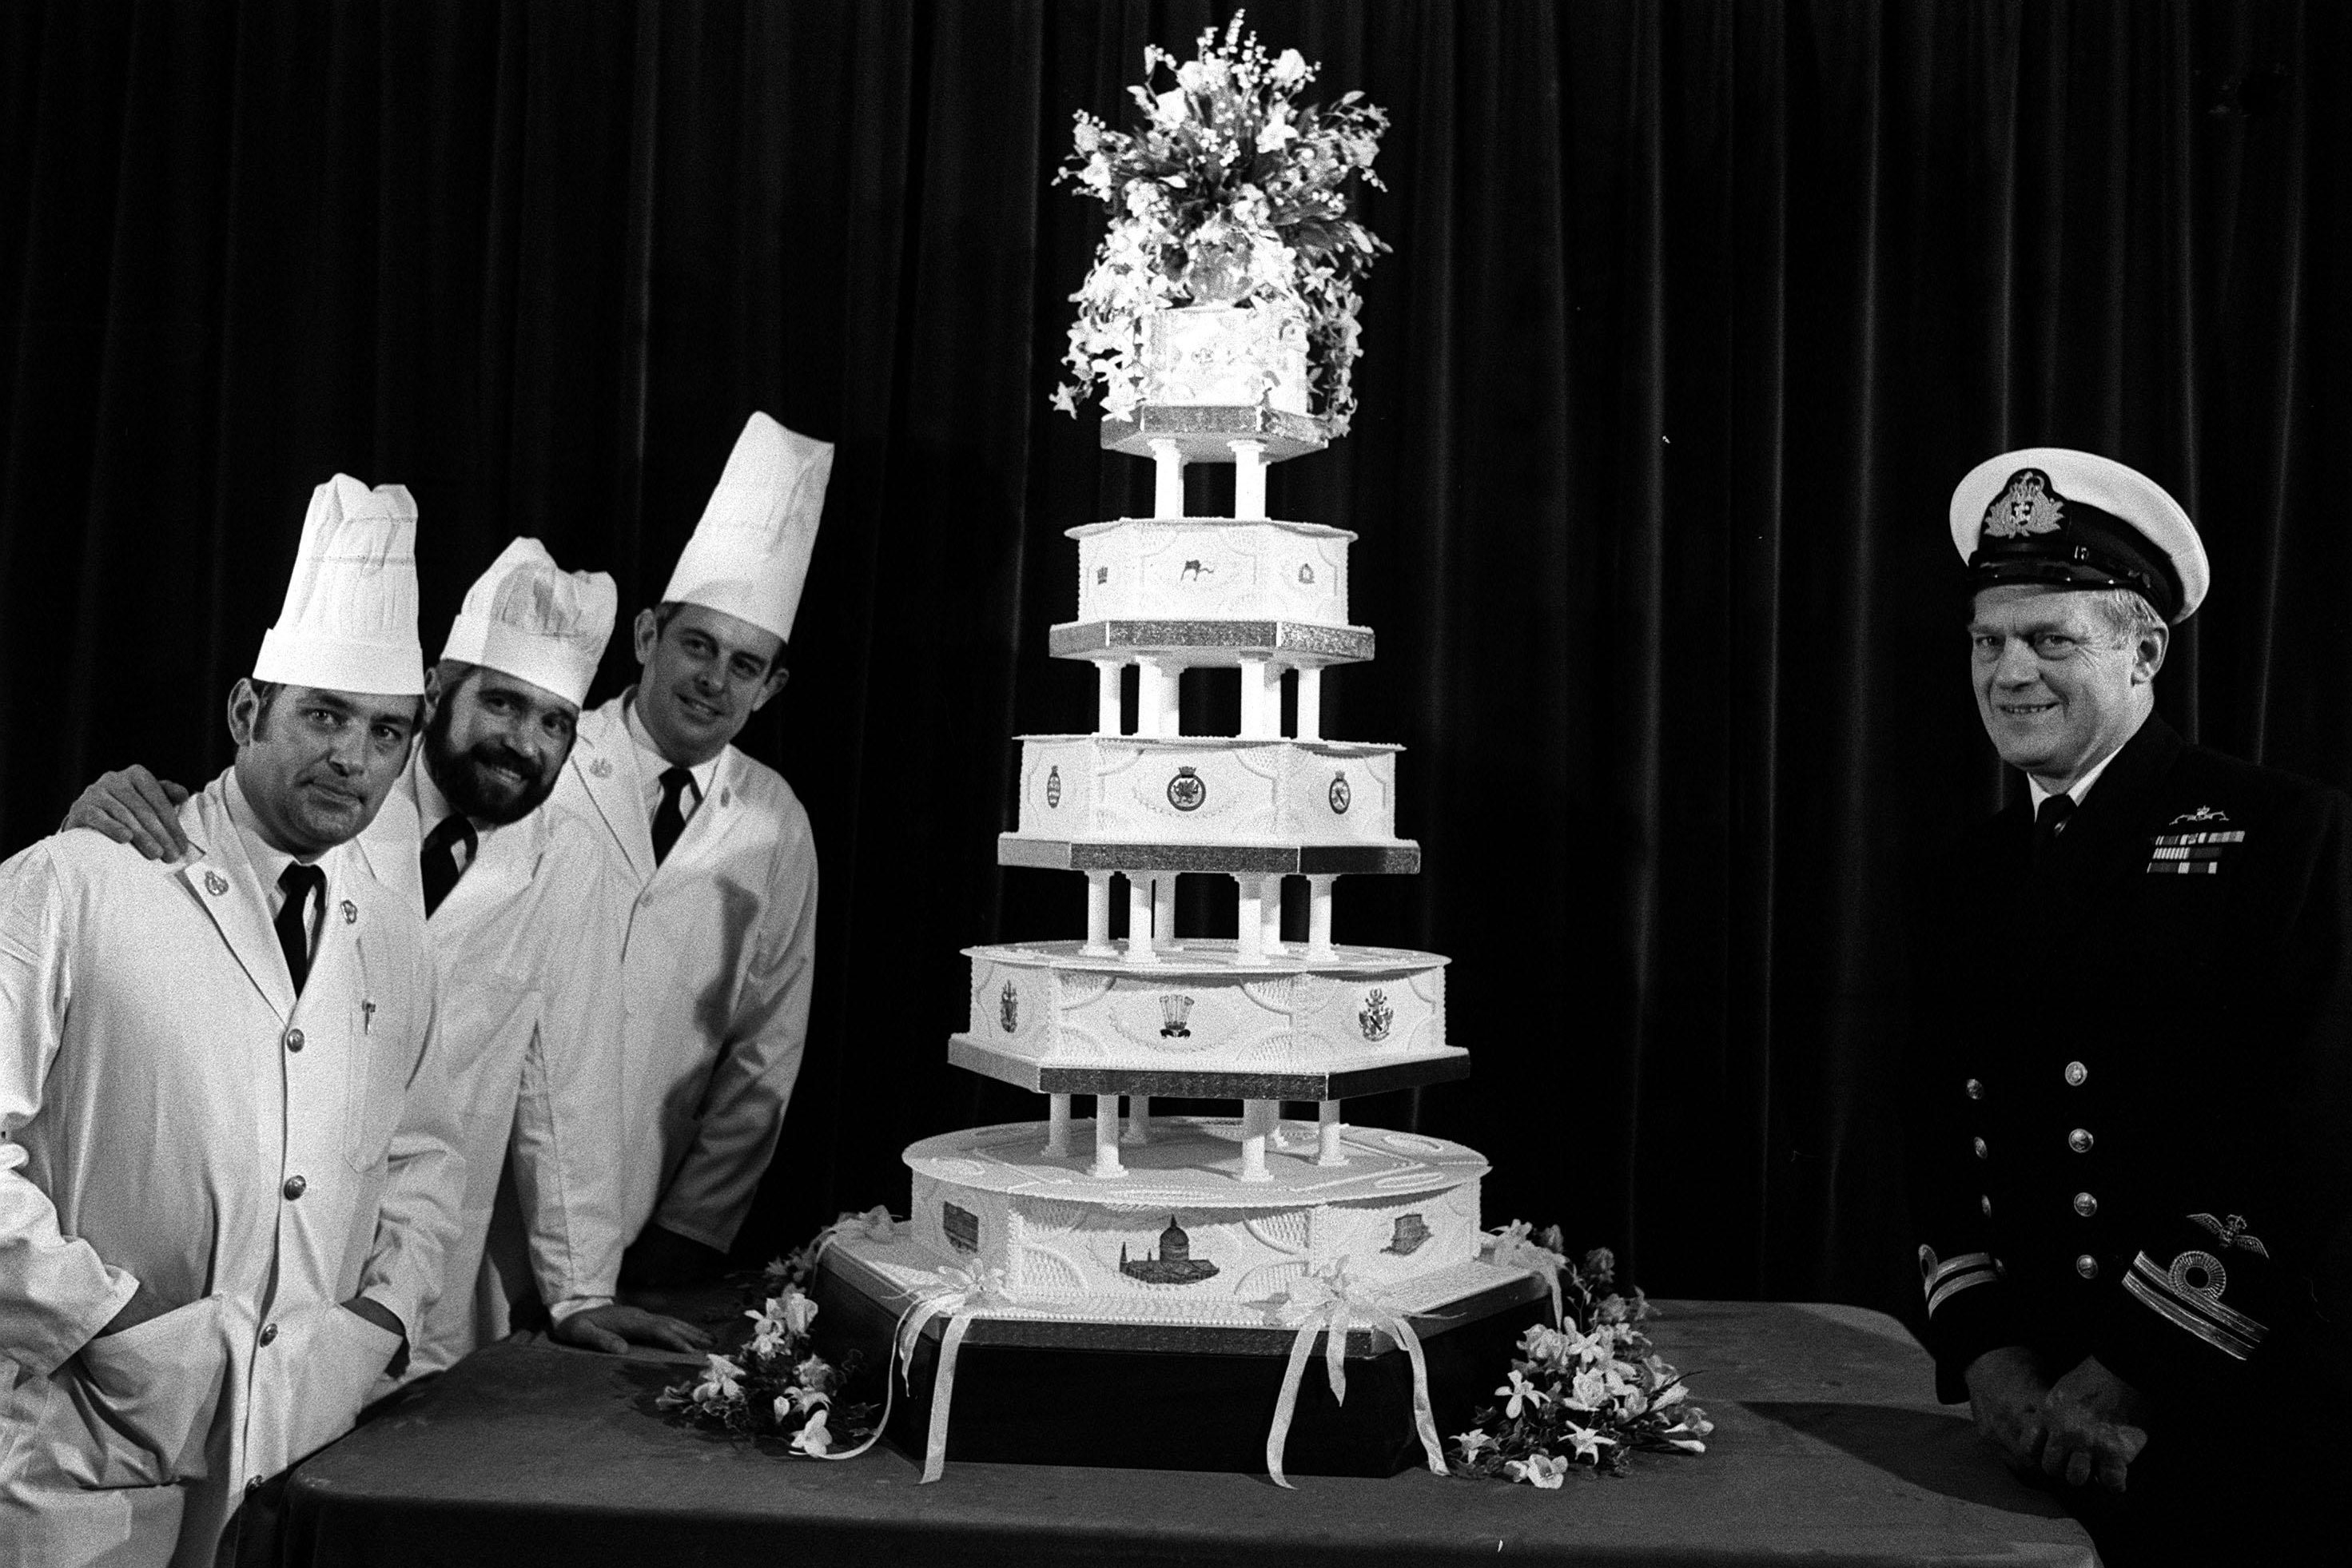 Prince of Wales and Diana Princess of Wales' wedding cake